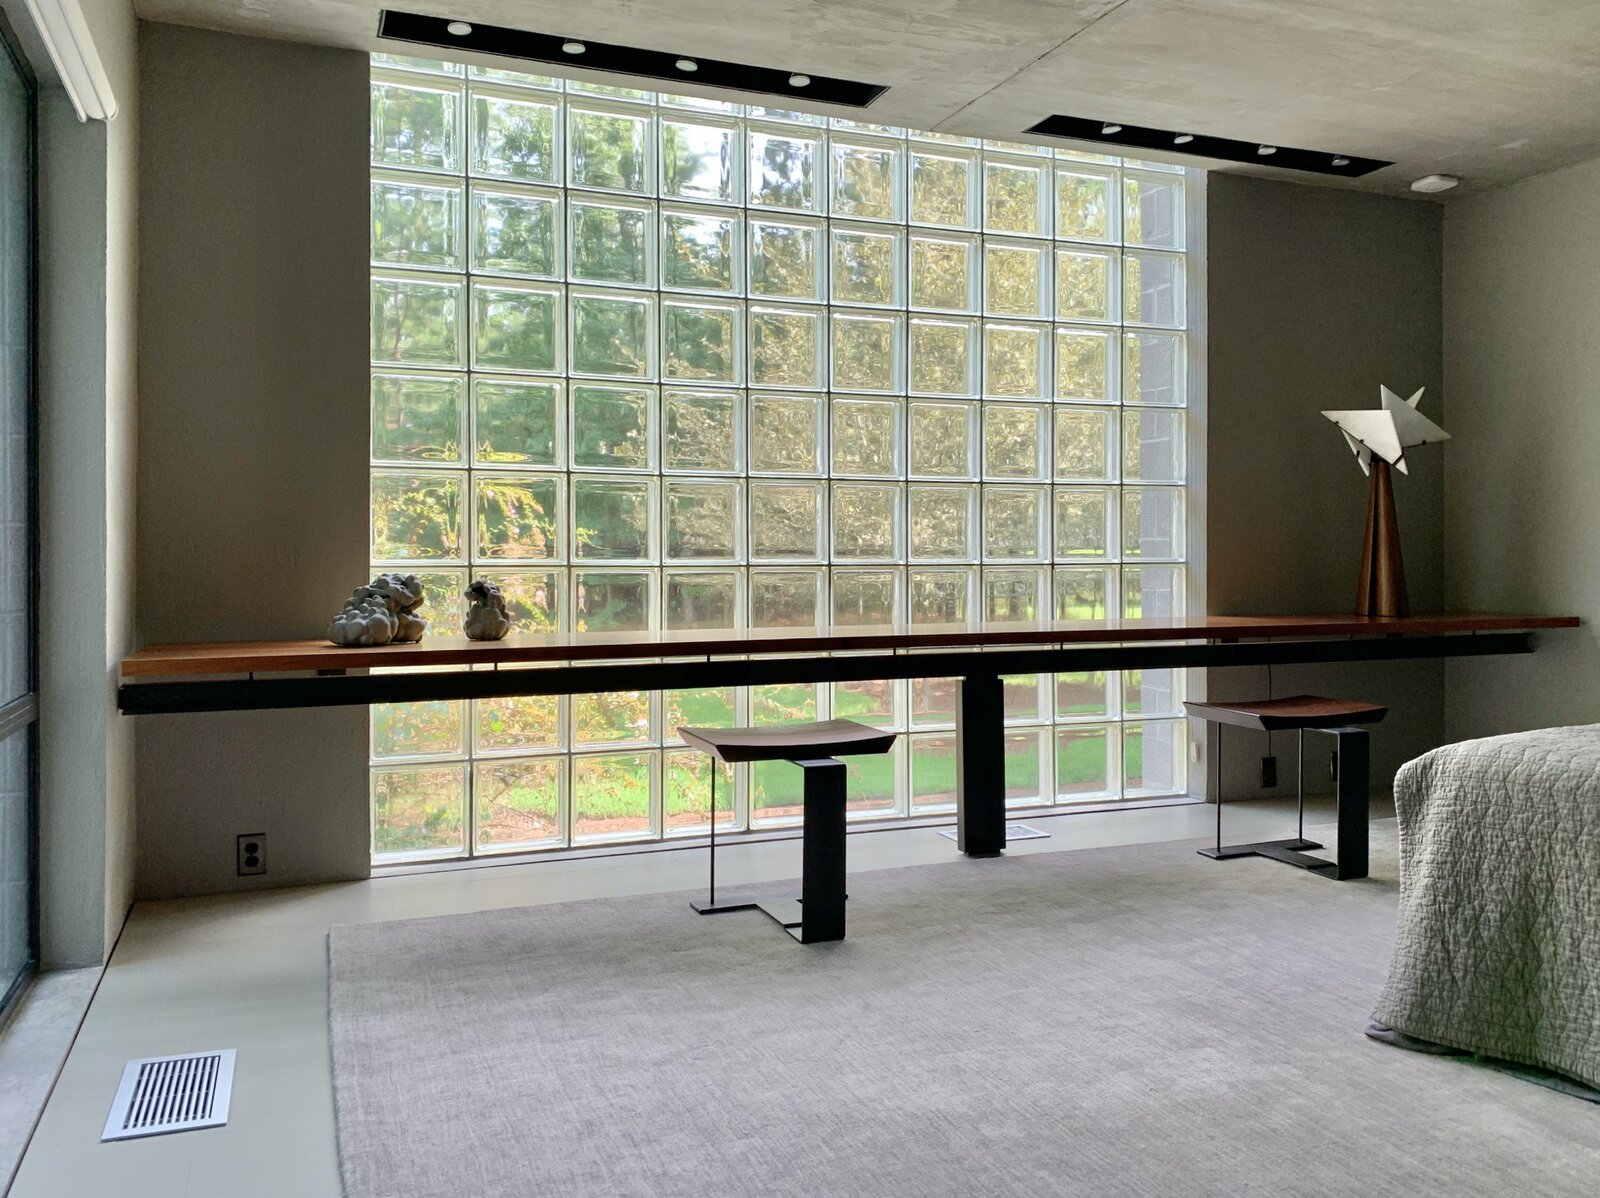 """One of the home's two bedrooms features a <span style=""""font-family: Theinhardt, -apple-system, BlinkMacSystemFont, &quot;Segoe UI&quot;, Roboto, Oxygen-Sans, Ubuntu, Cantarell, &quot;Helvetica Neue&quot;, sans-serif;"""">16-foot-long solid mahogany work station that is original to the home. Another glass-block window overlooks the yard.</span><span style=""""font-family: Theinhardt, -apple-system, BlinkMacSystemFont, &quot;Segoe UI&quot;, Roboto, Oxygen-Sans, Ubuntu, Cantarell, &quot;Helvetica Neue&quot;, sans-serif;""""> </span>  Photo 8 of 12 in Surrounded by a Marshy Forest, This Fortress-Like Home Asks $1.7M in Virginia"""